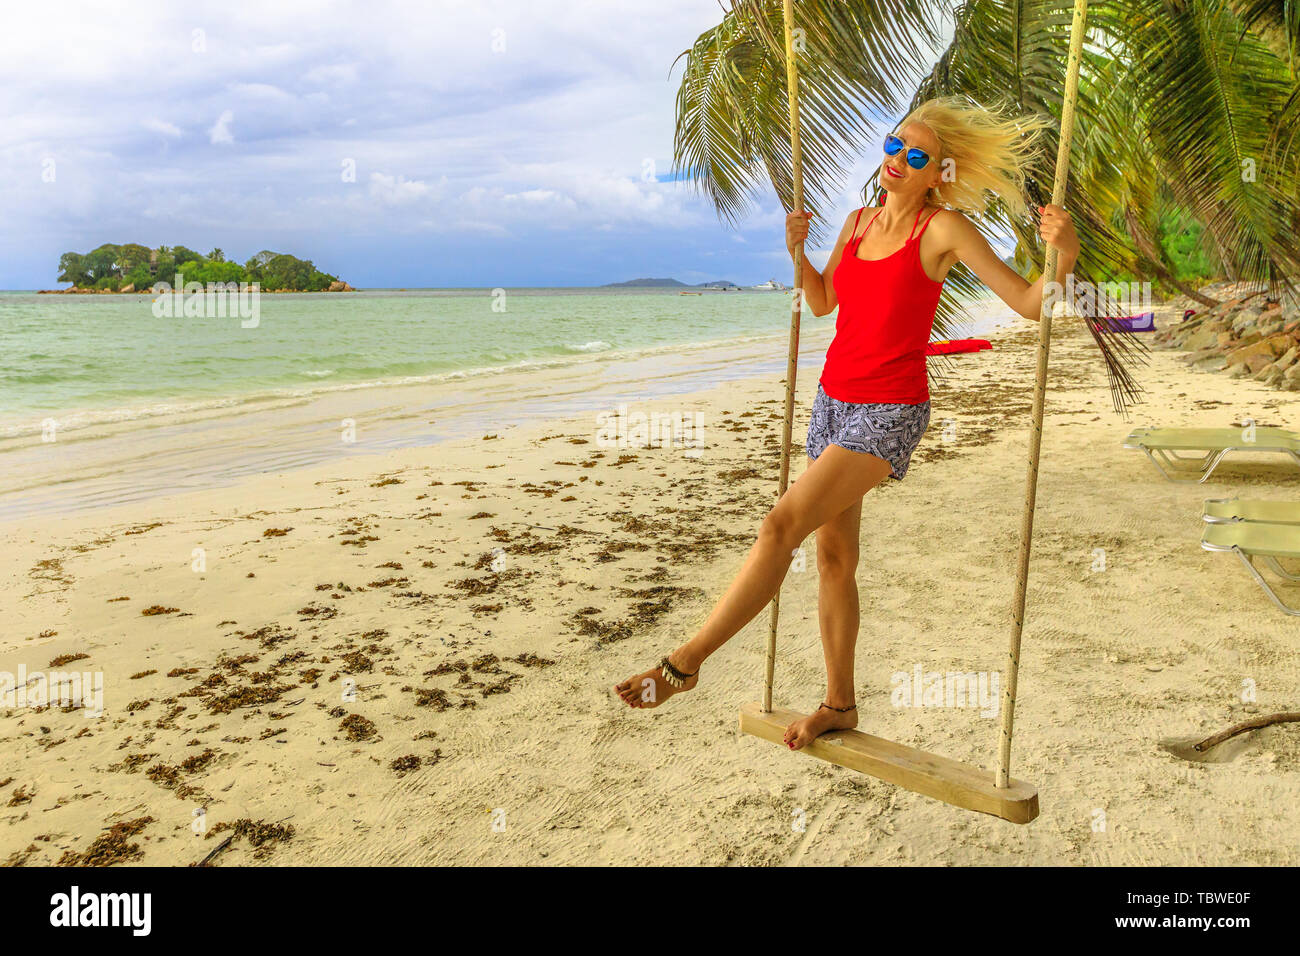 Carefree blonde woman swinging on tropical beach with palms of Anse Volbert Cote d'Or, Praslin, Seychelles, Indian Ocean. Islet of Chauve Souris on Stock Photo